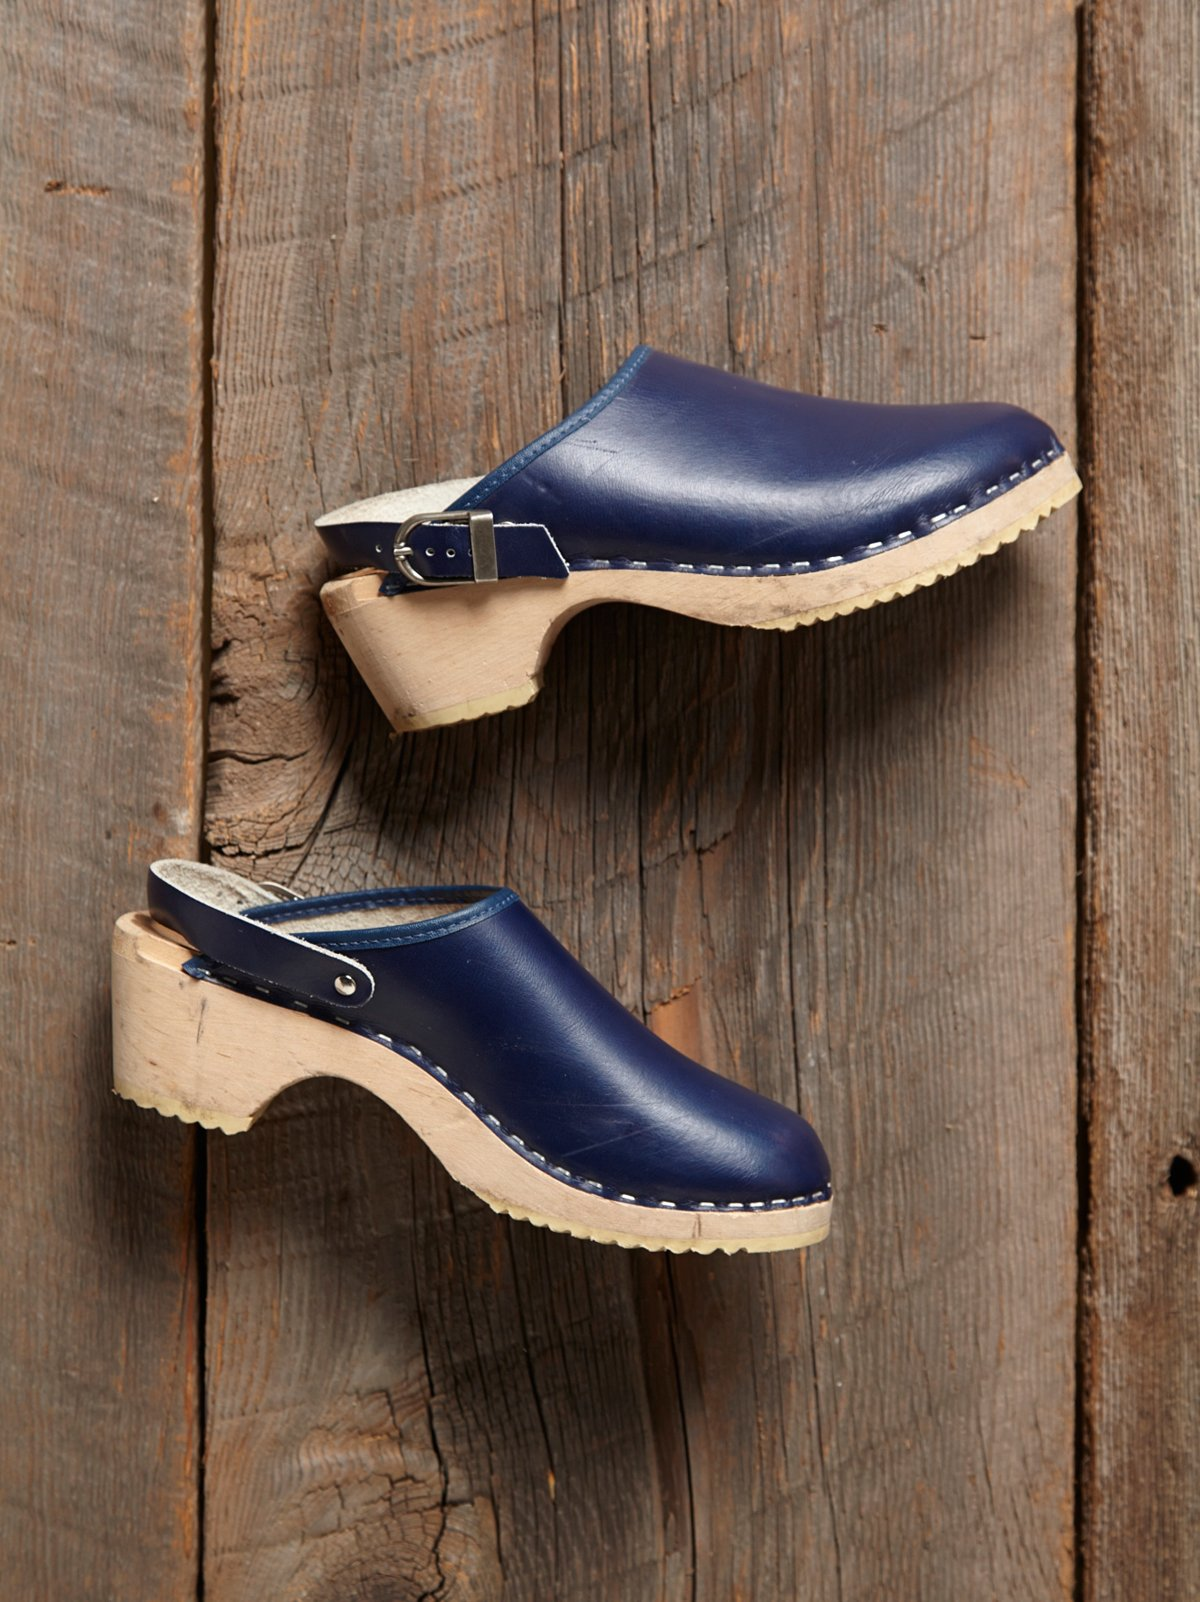 Vintage Blue Wooden Clogs